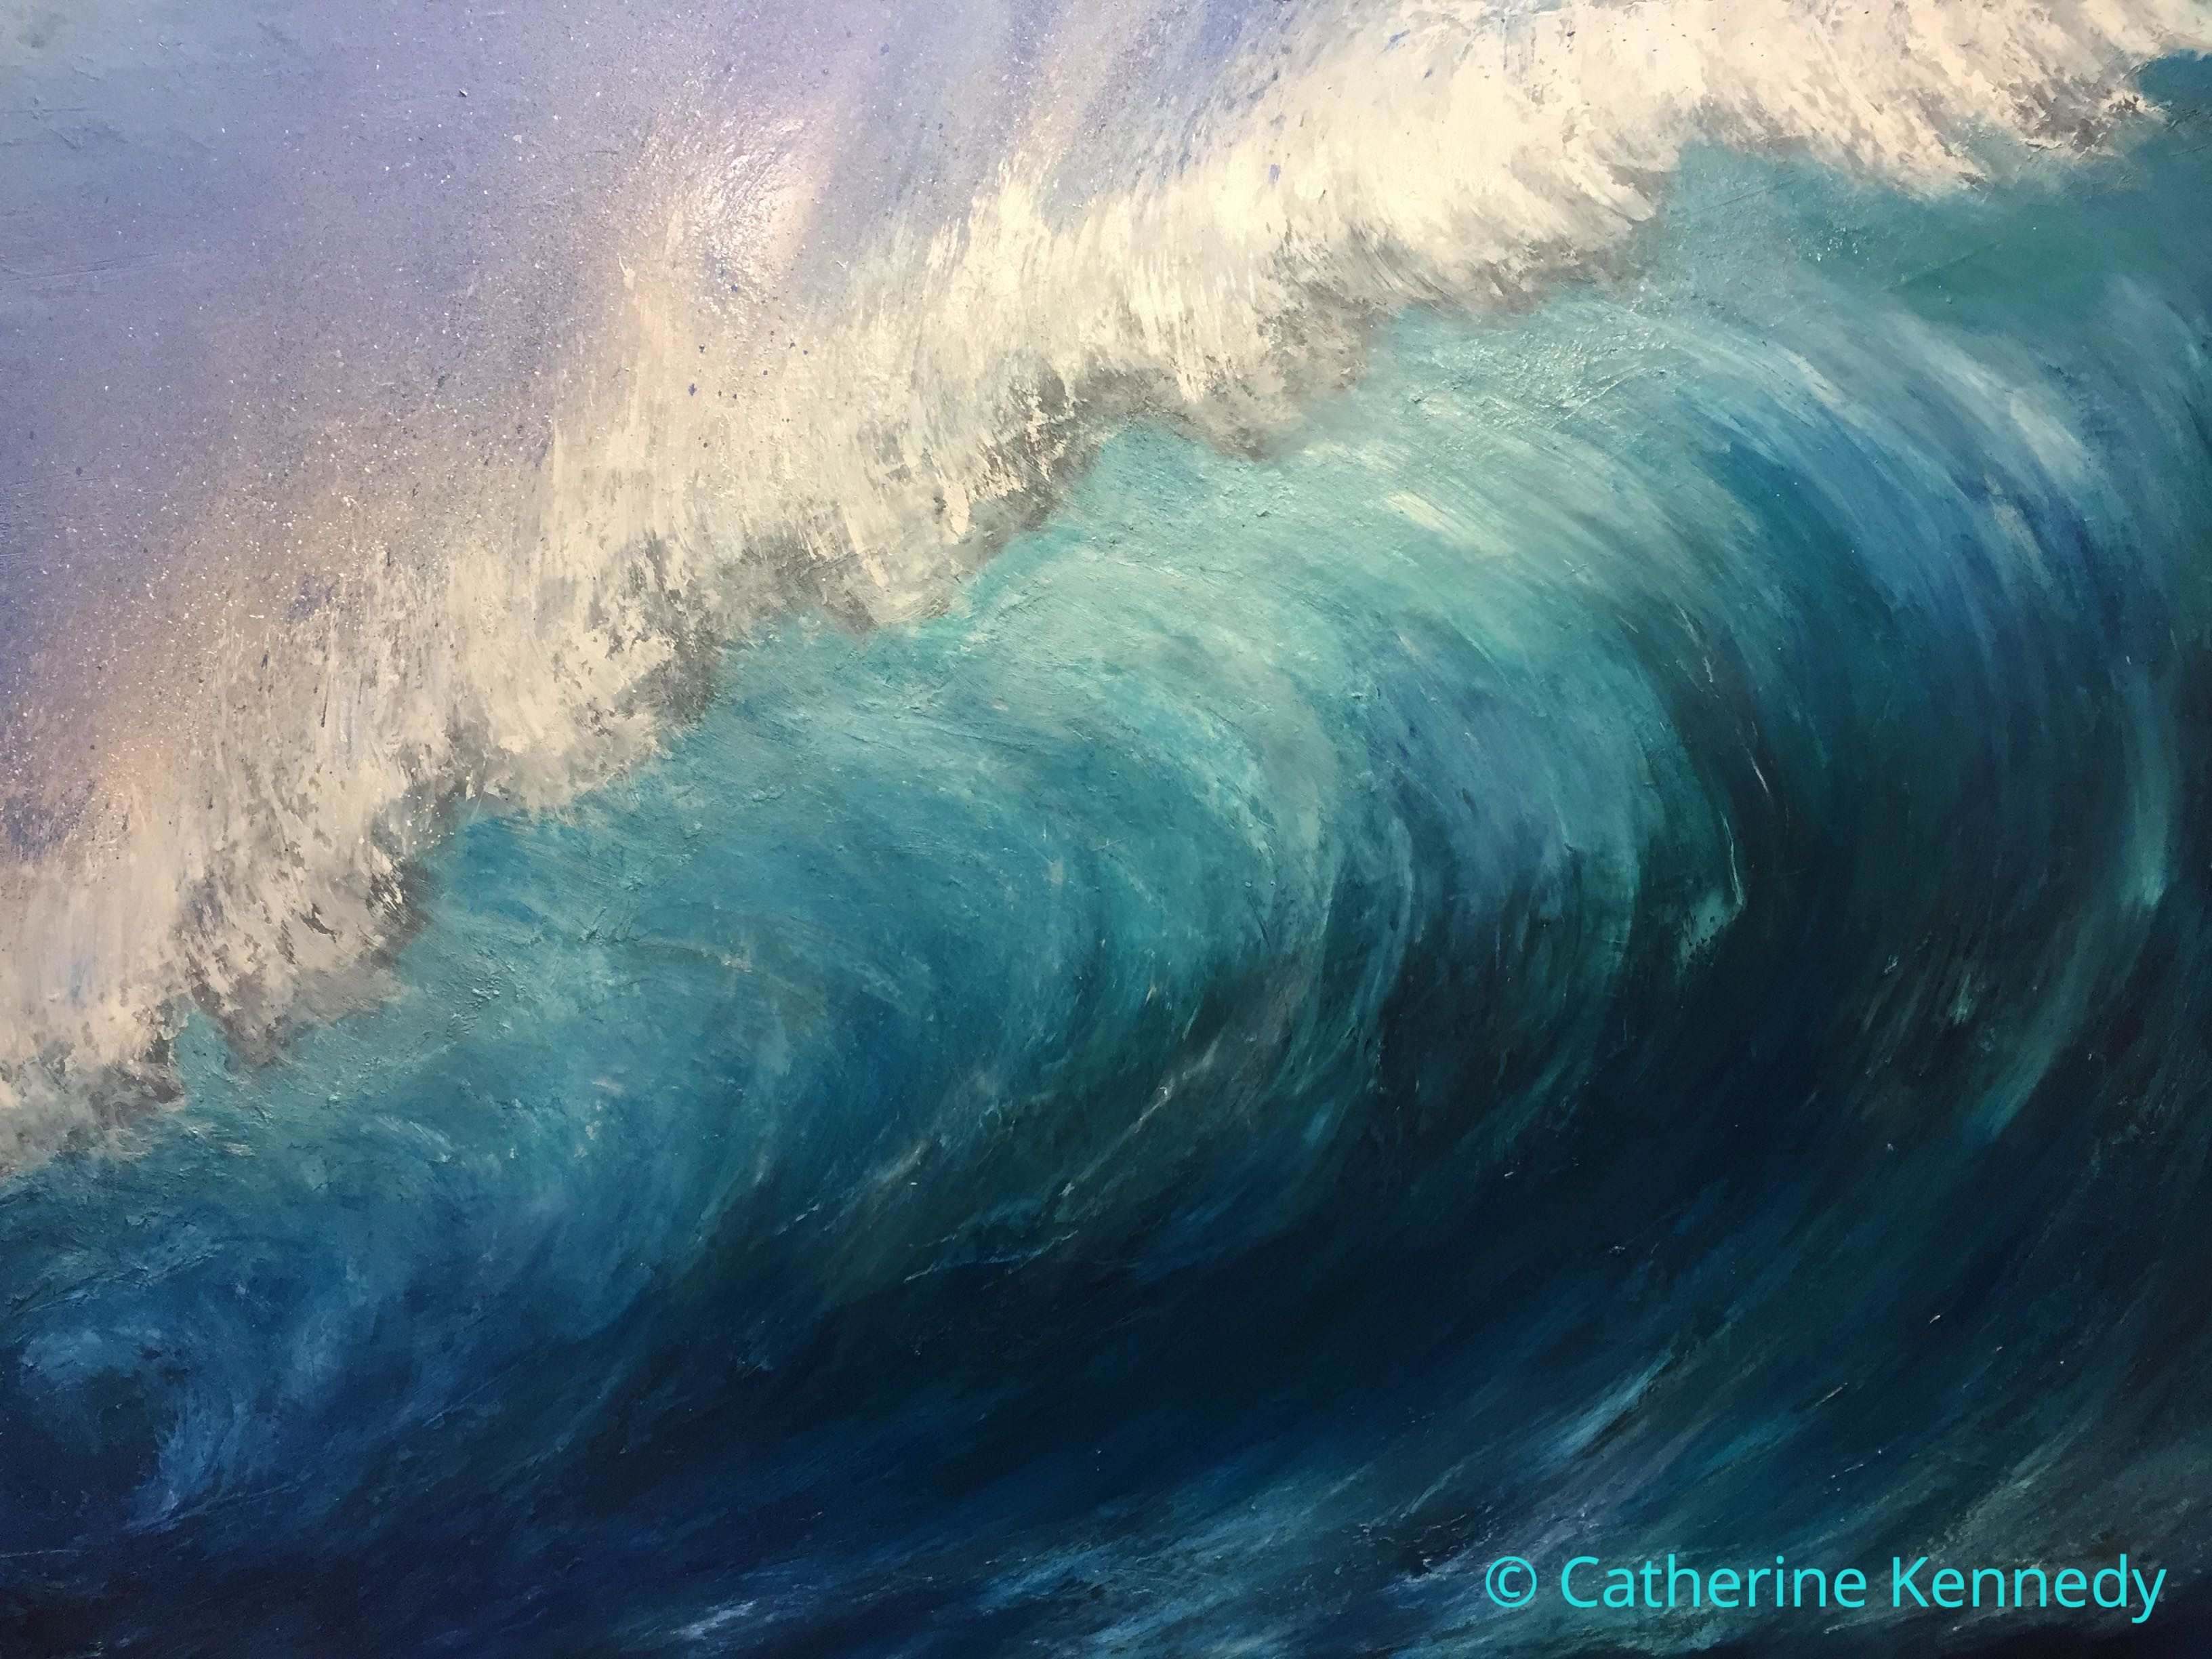 """Wave breaking"" by Catherine Kennedy Original oil on canvas painting measuring: 70 x 100 cm or 27.5 x 39 inches. Large turquoise wave cresting"